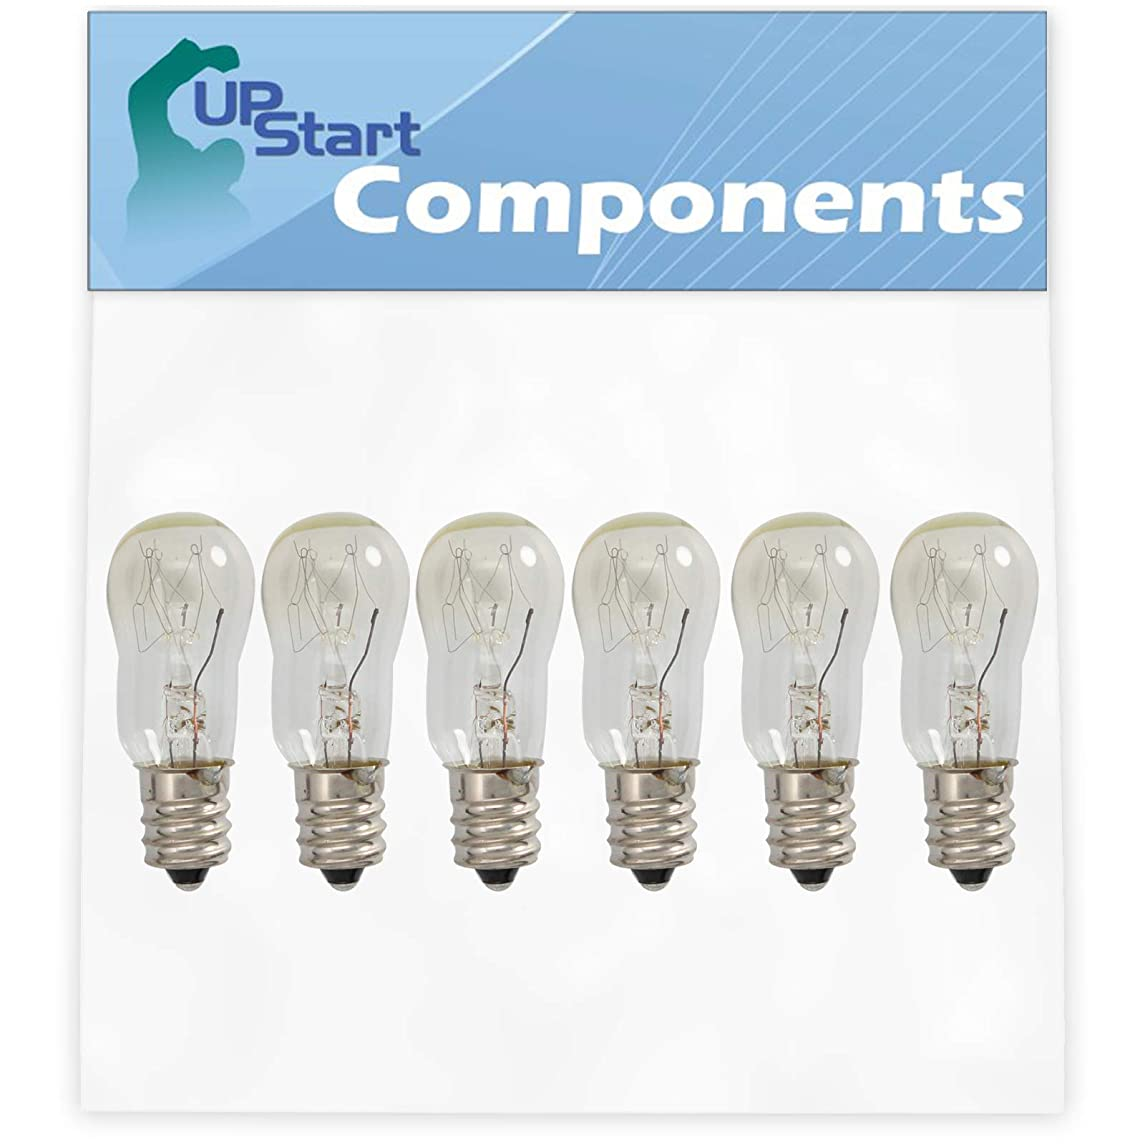 6-Pack WE05X20431 Dryer Light Bulb Replacement for General Electric DDE7608 Dryer - Compatible with WE4M305 Dryer Drum Light Bulb